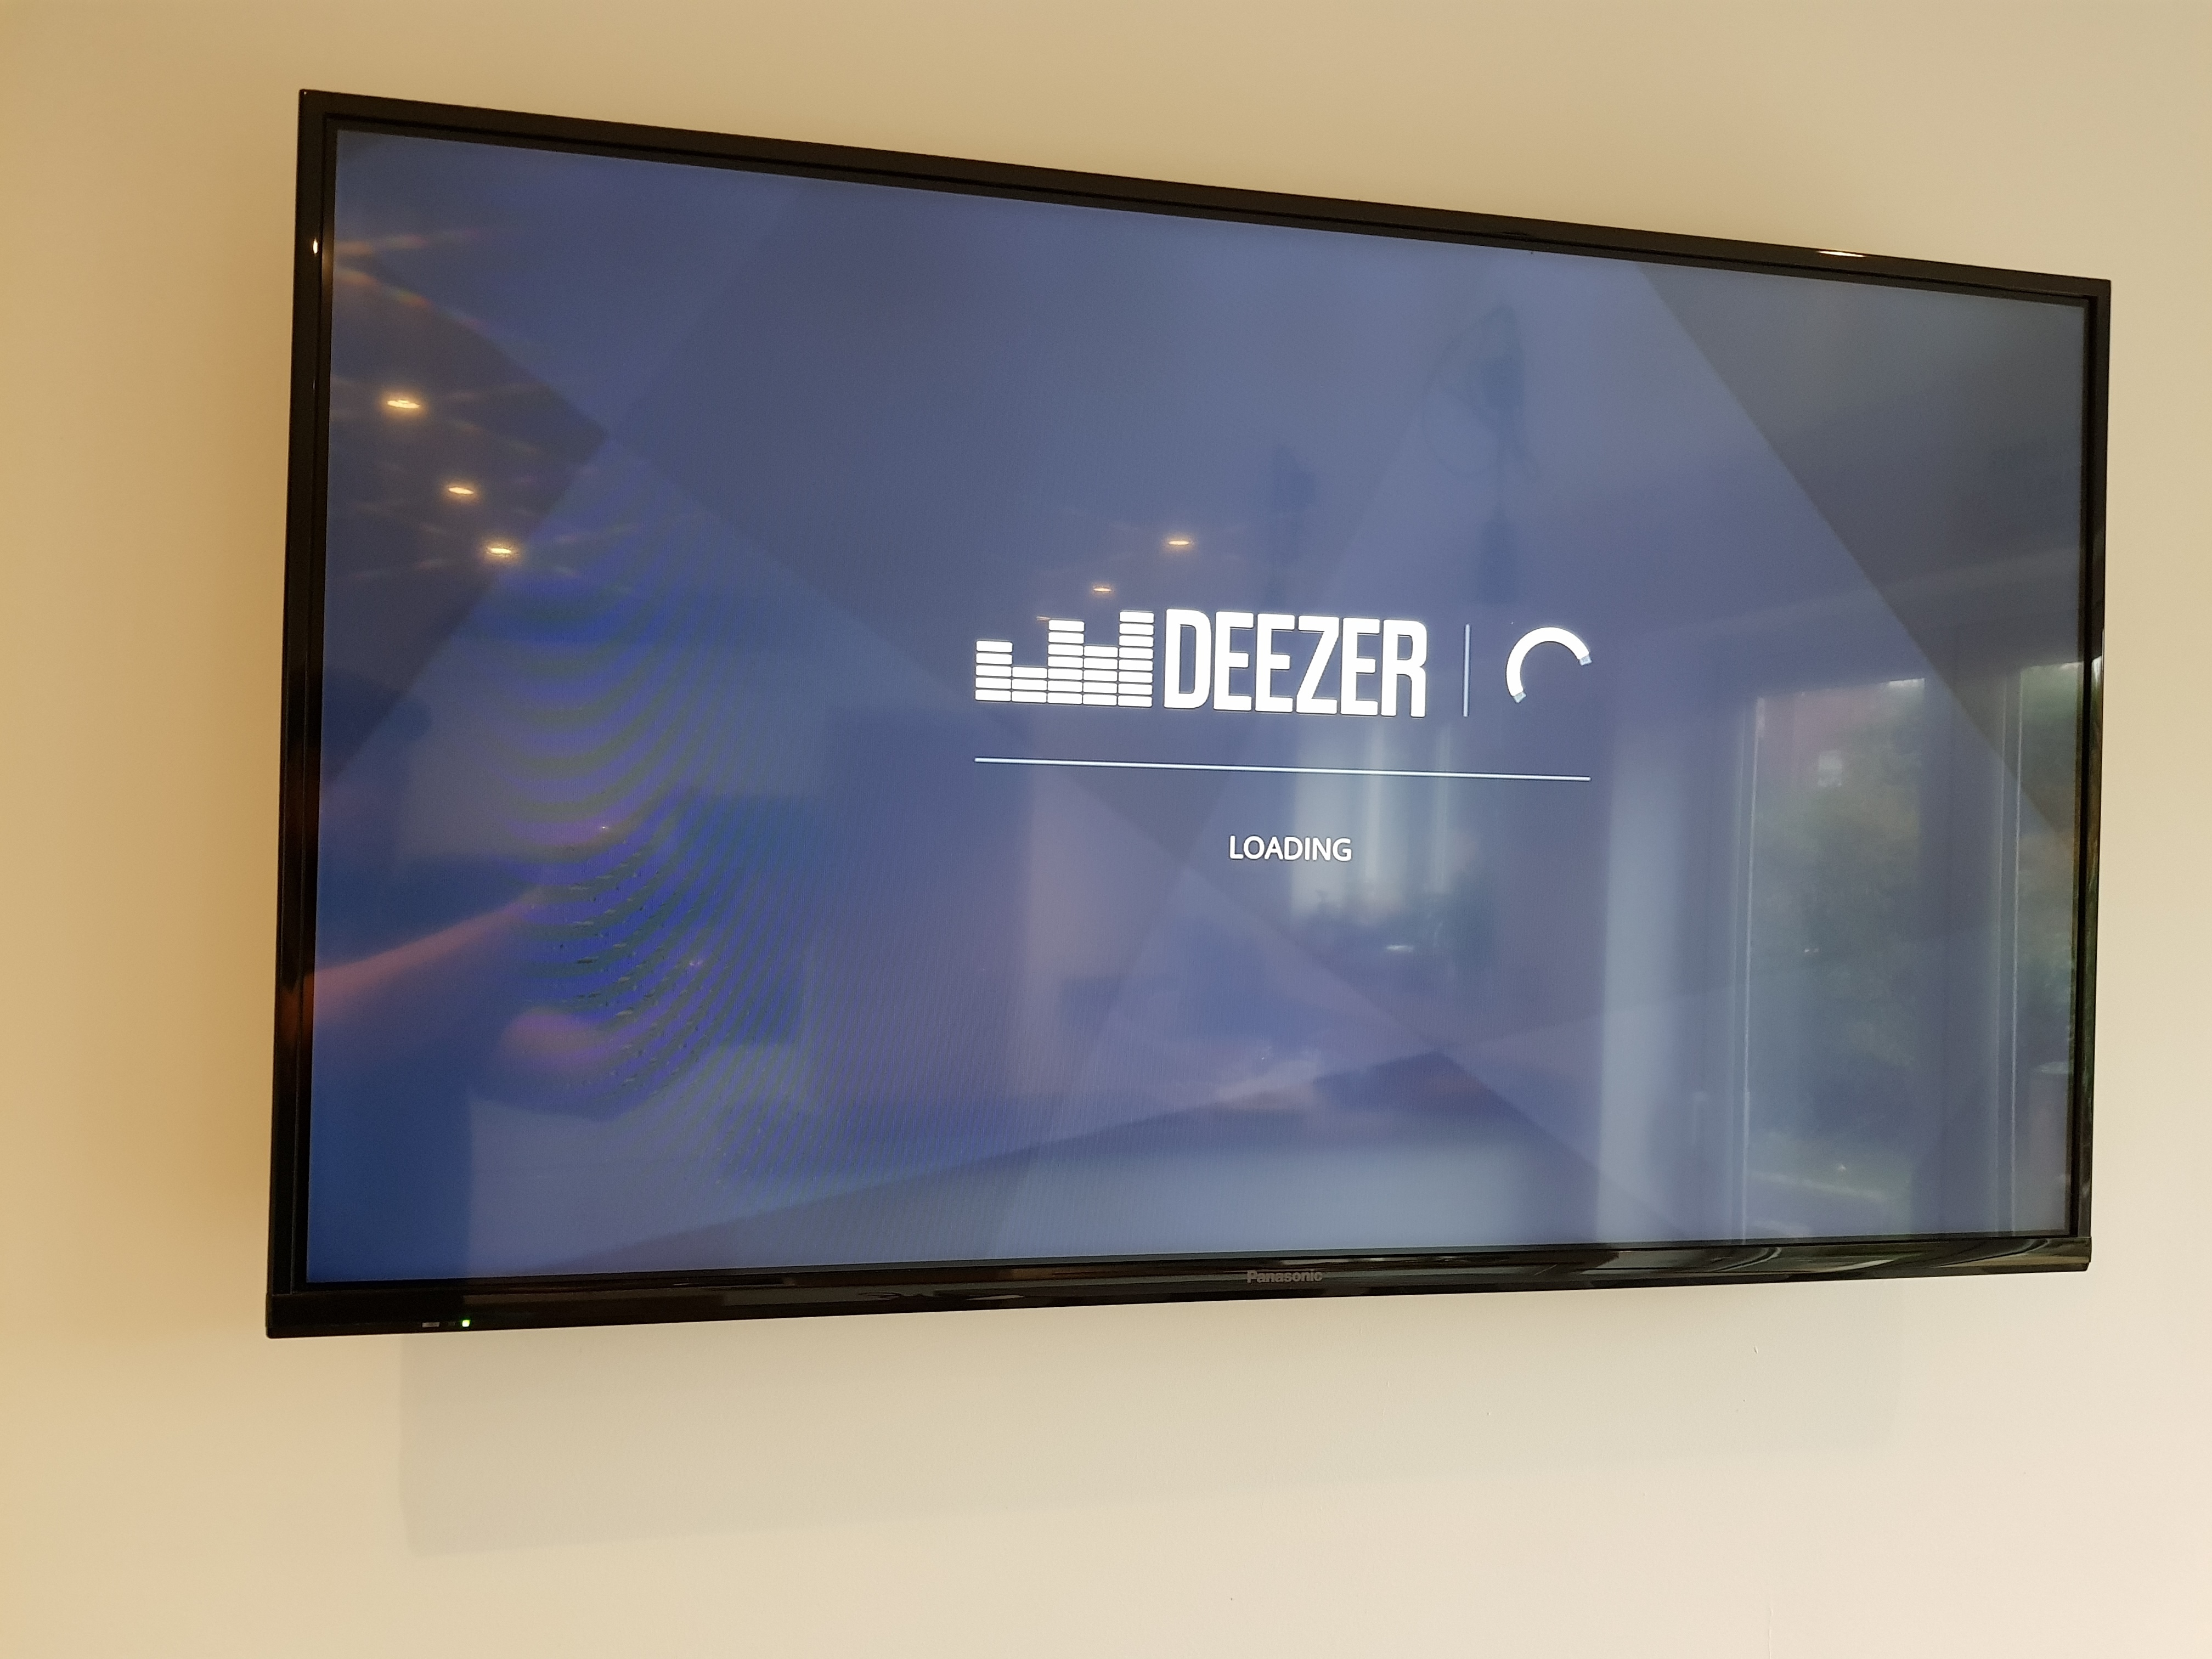 Chromecast audio issues on Android | Deezer Community